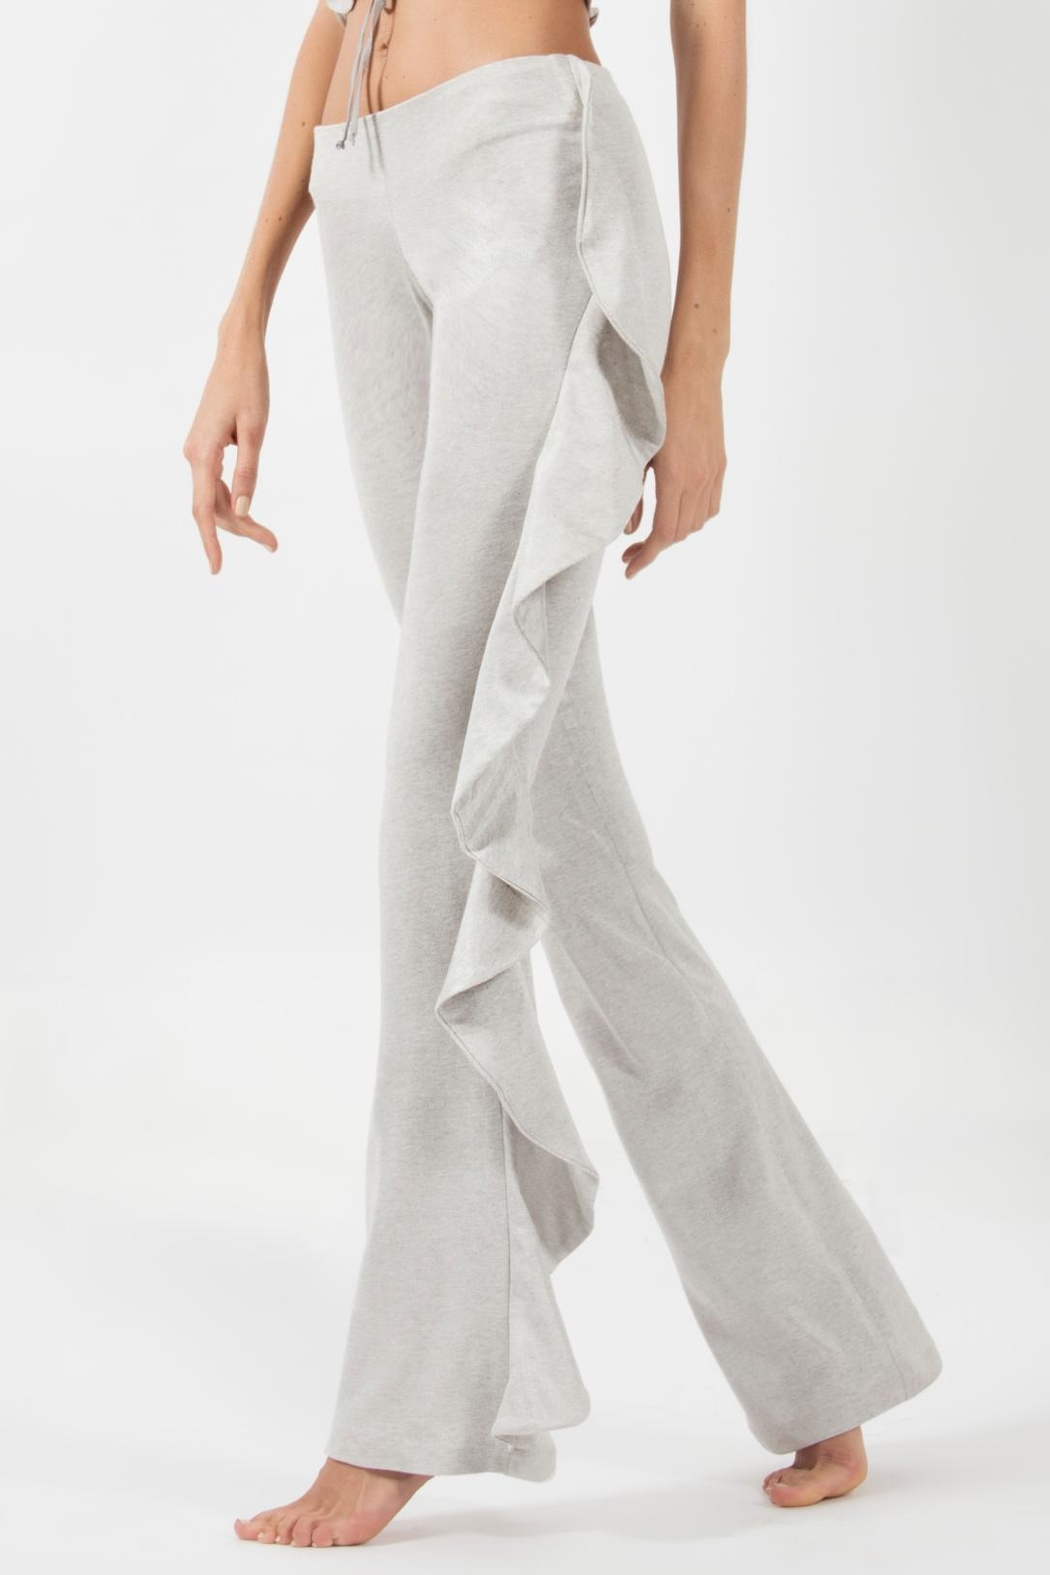 Viesca y Viesca Ruffle Side Pant - Main Image